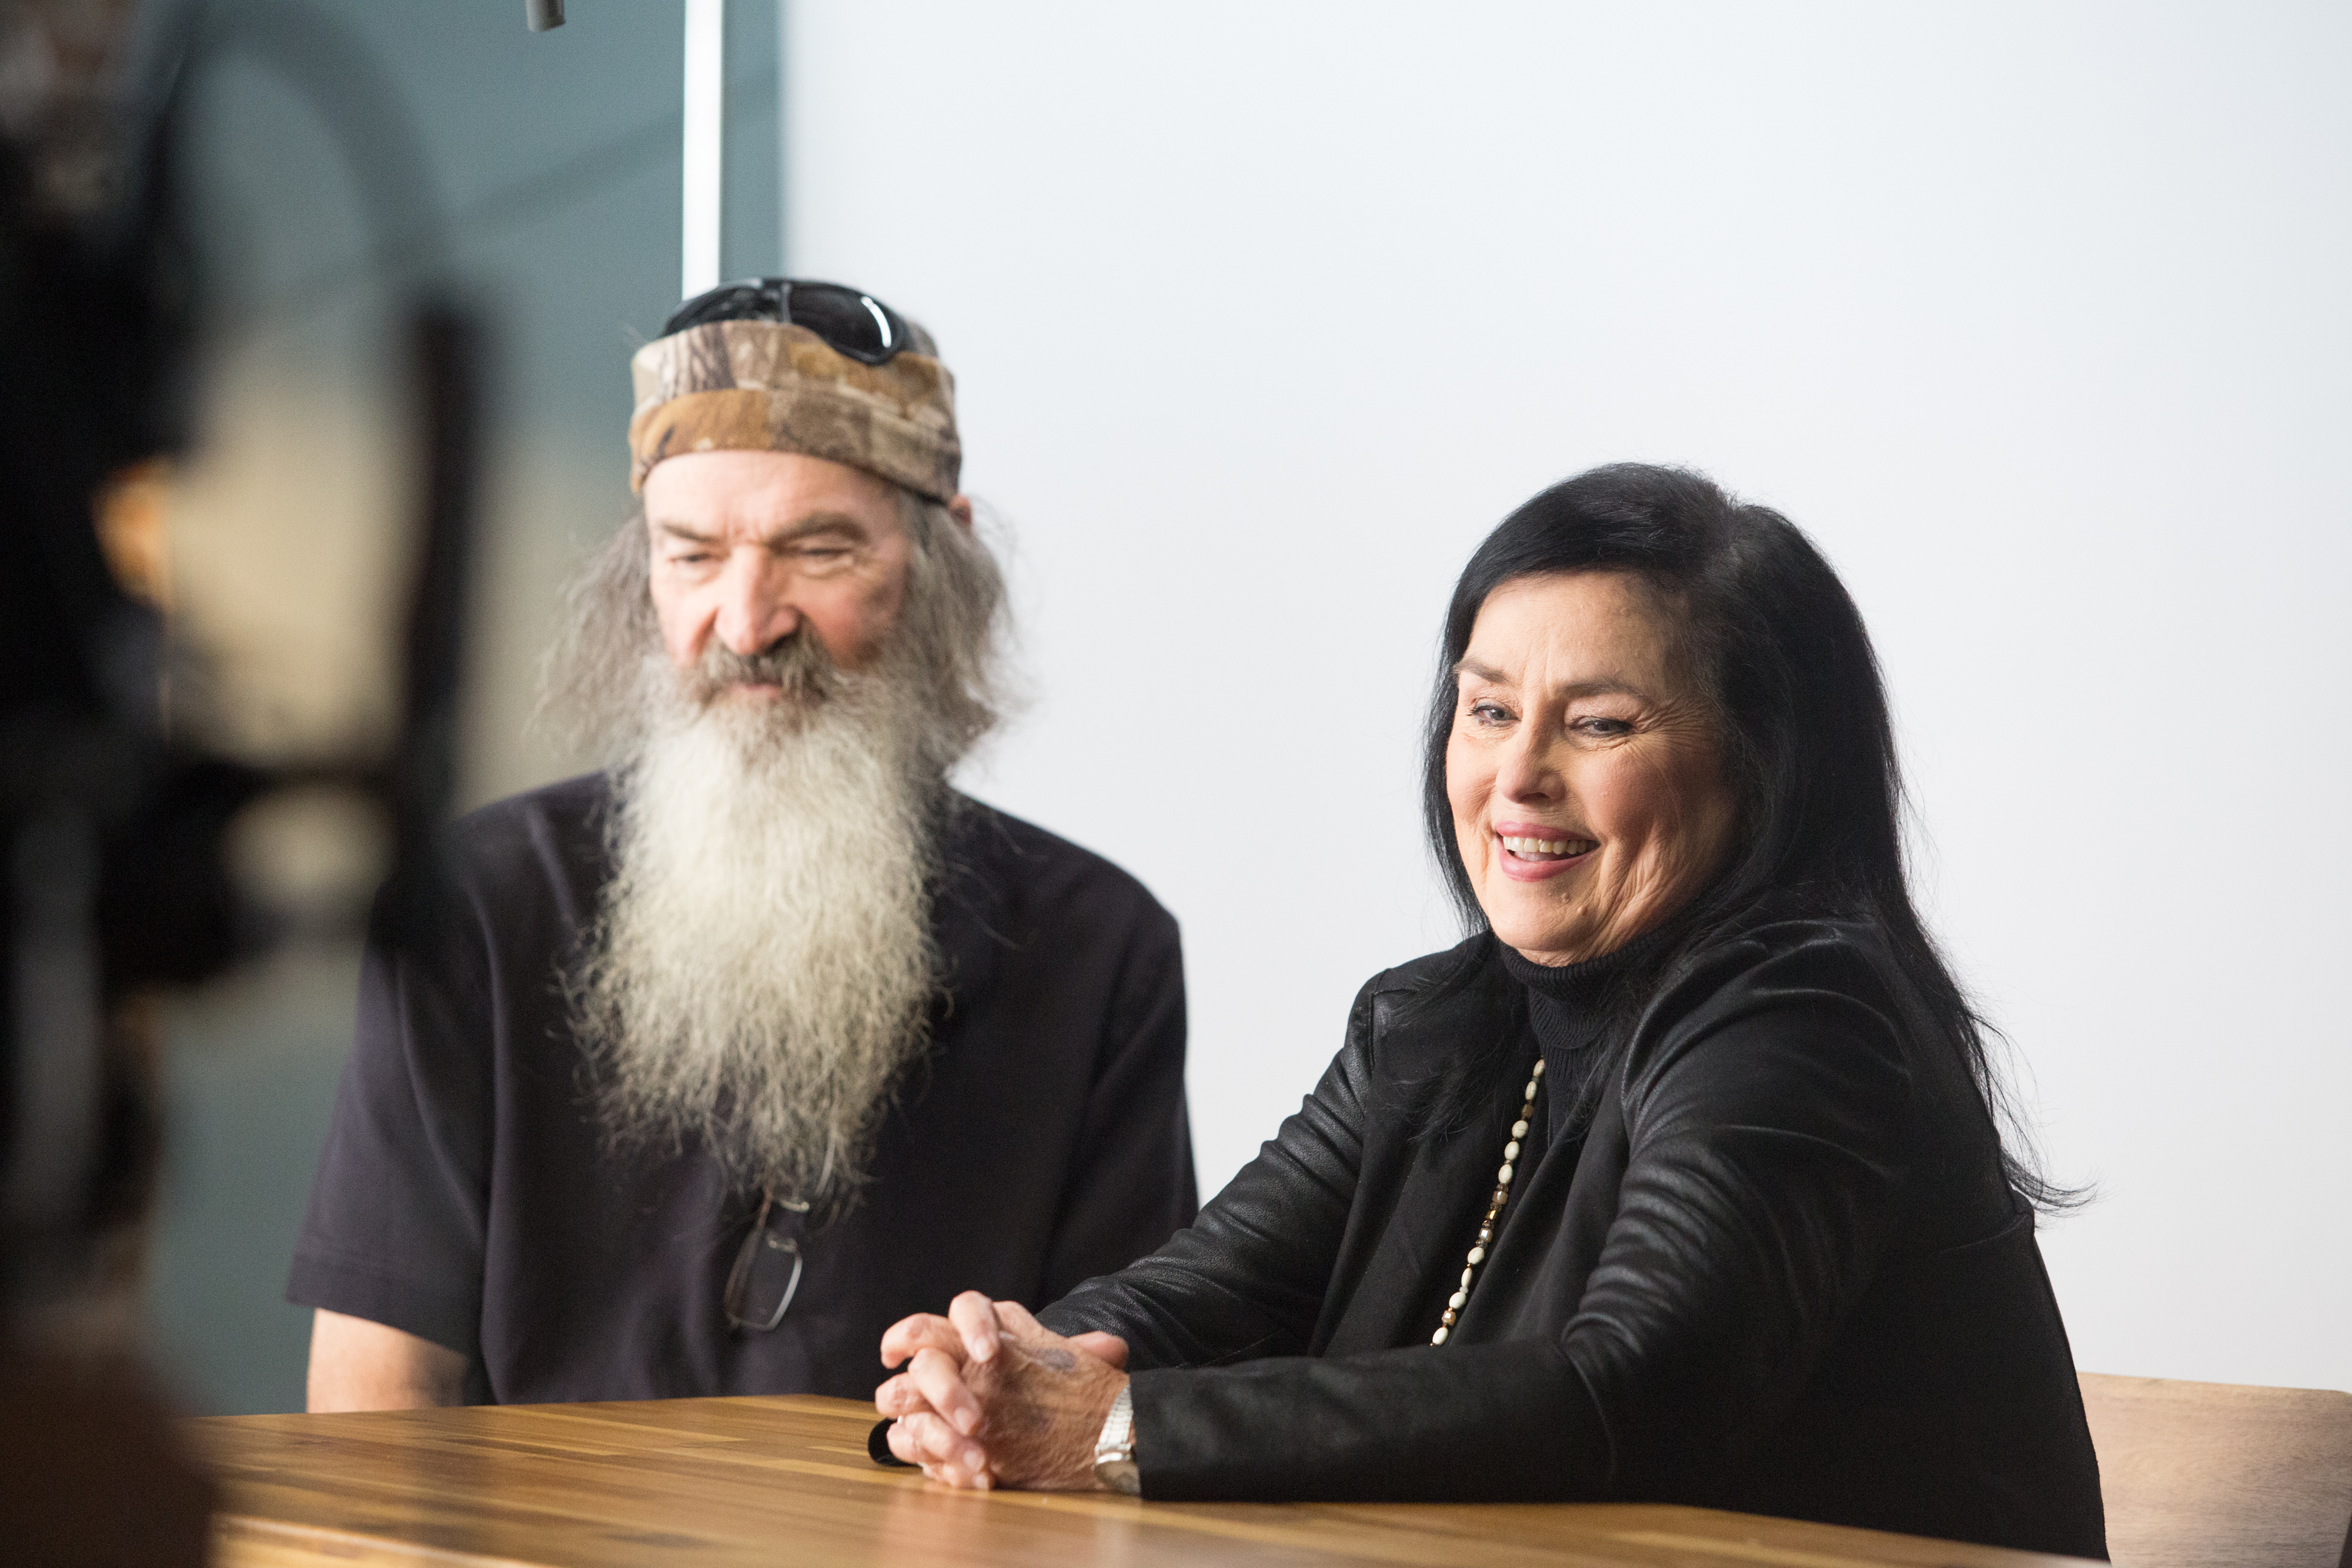 I Am Second announces video series starring Duck Dynasty family